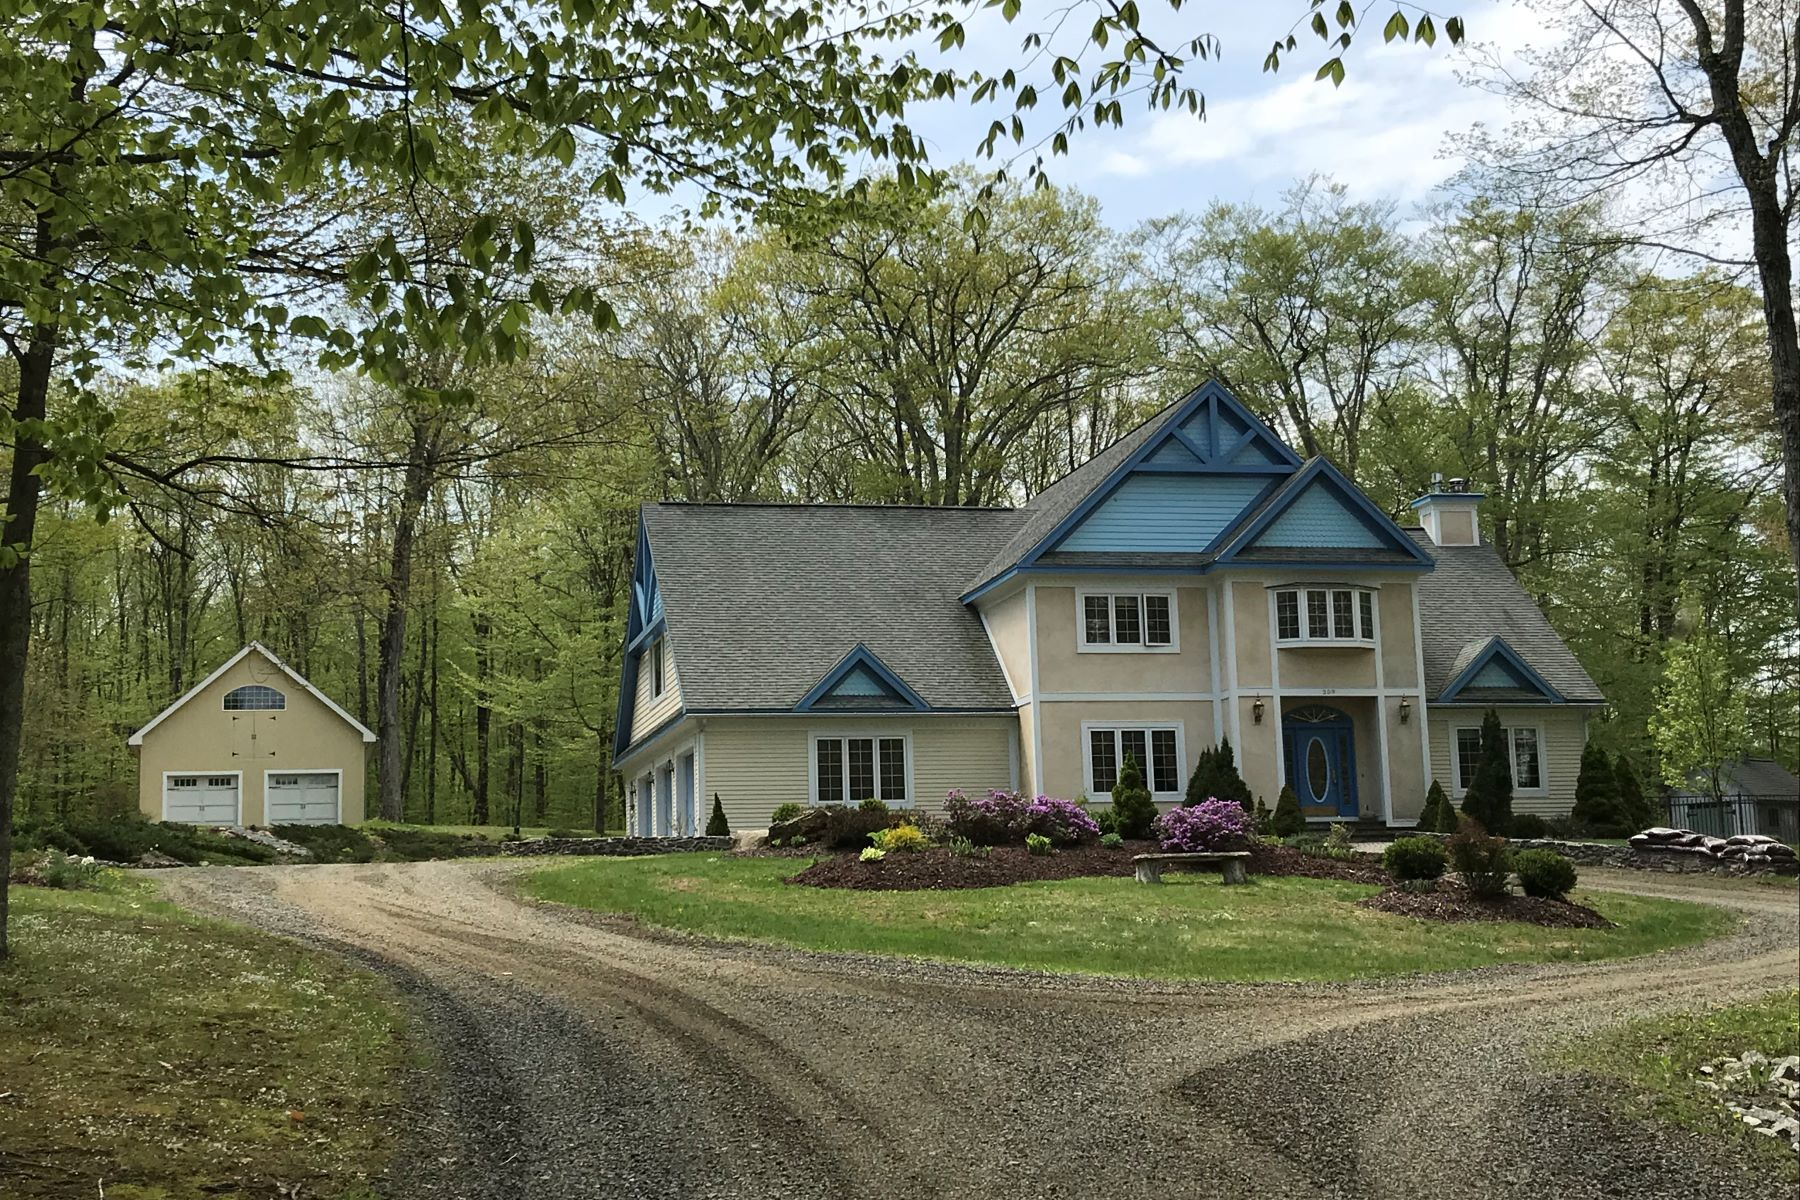 Single Family Homes for Sale at Beautiful Countryside Colonial 259 Hickory Lane Bethlehem, Connecticut 06751 United States